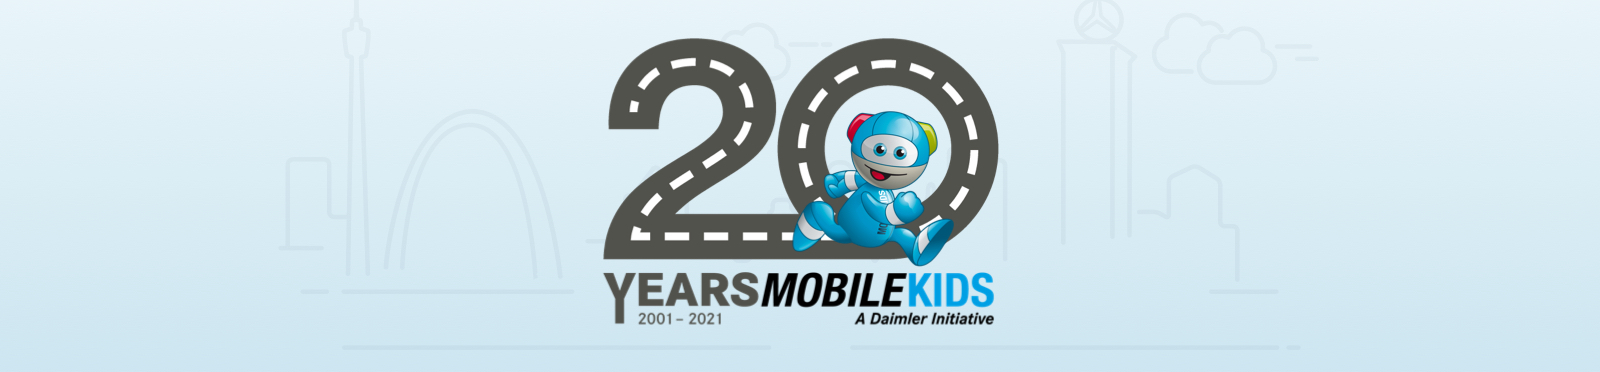 20 years of mobilekids